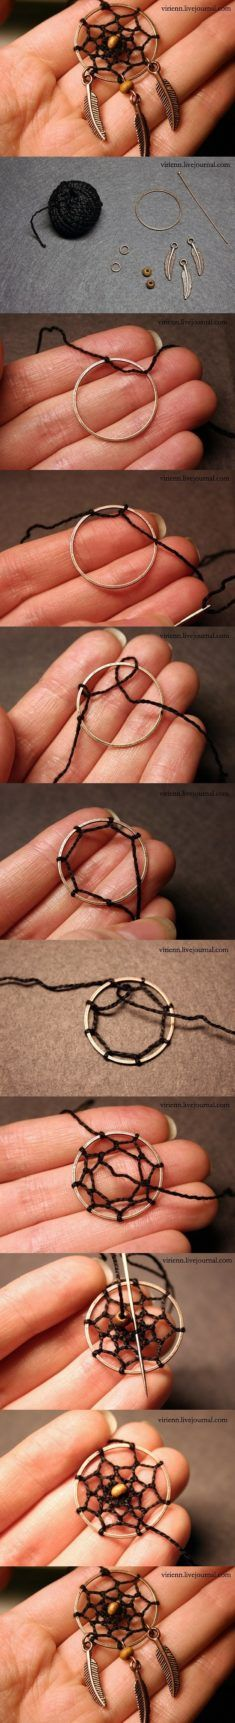 Material: – Tealight Holders Glass – plastic spoon – hot glue gun – Spray Paint – Cutter (box cutter) More info and instructions about this great tutorial you can find in the source url - above the photo. diyfuntips.com is a collection of the best and most creative do it yourself projects, tips and tutorials. […]